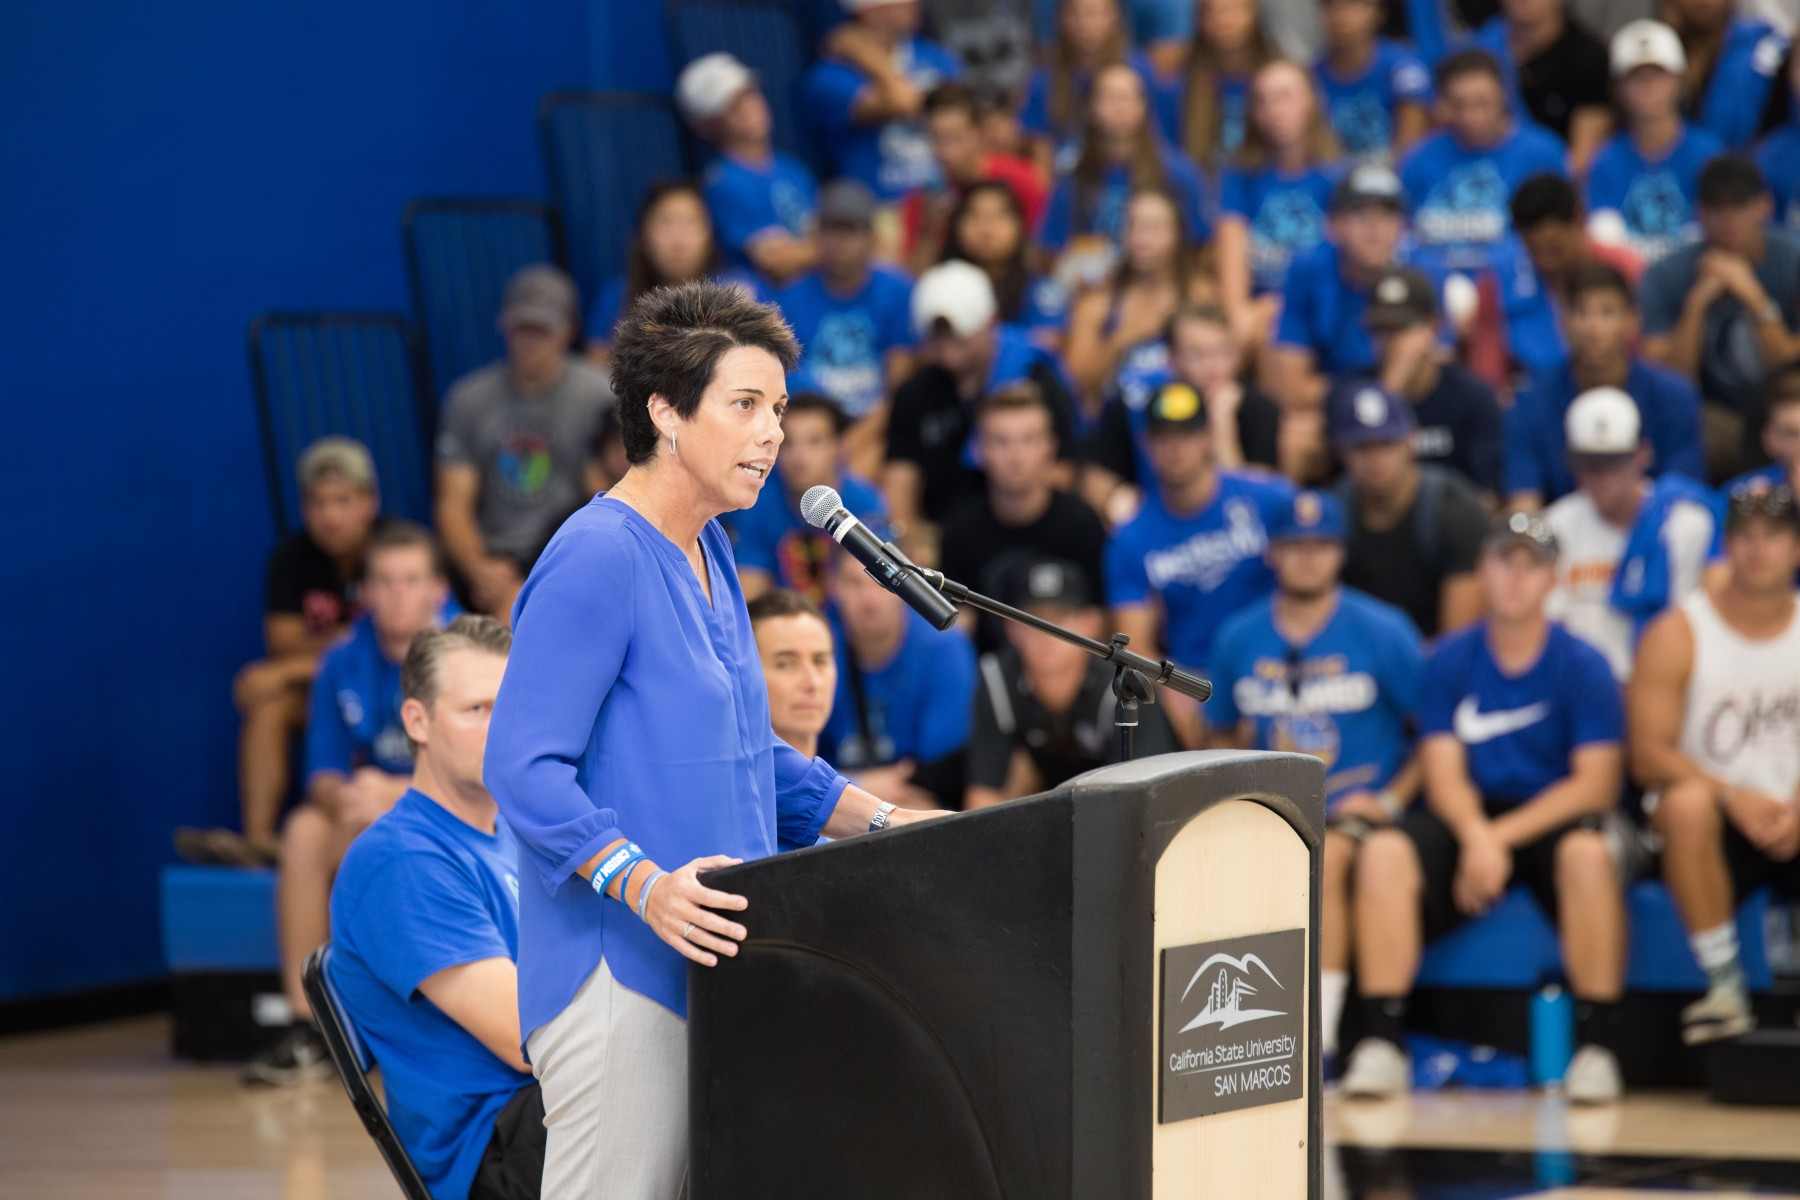 As athletic director, Jen Milo oversaw a three-year transition to a much higher level of competition in NCAA Division II.